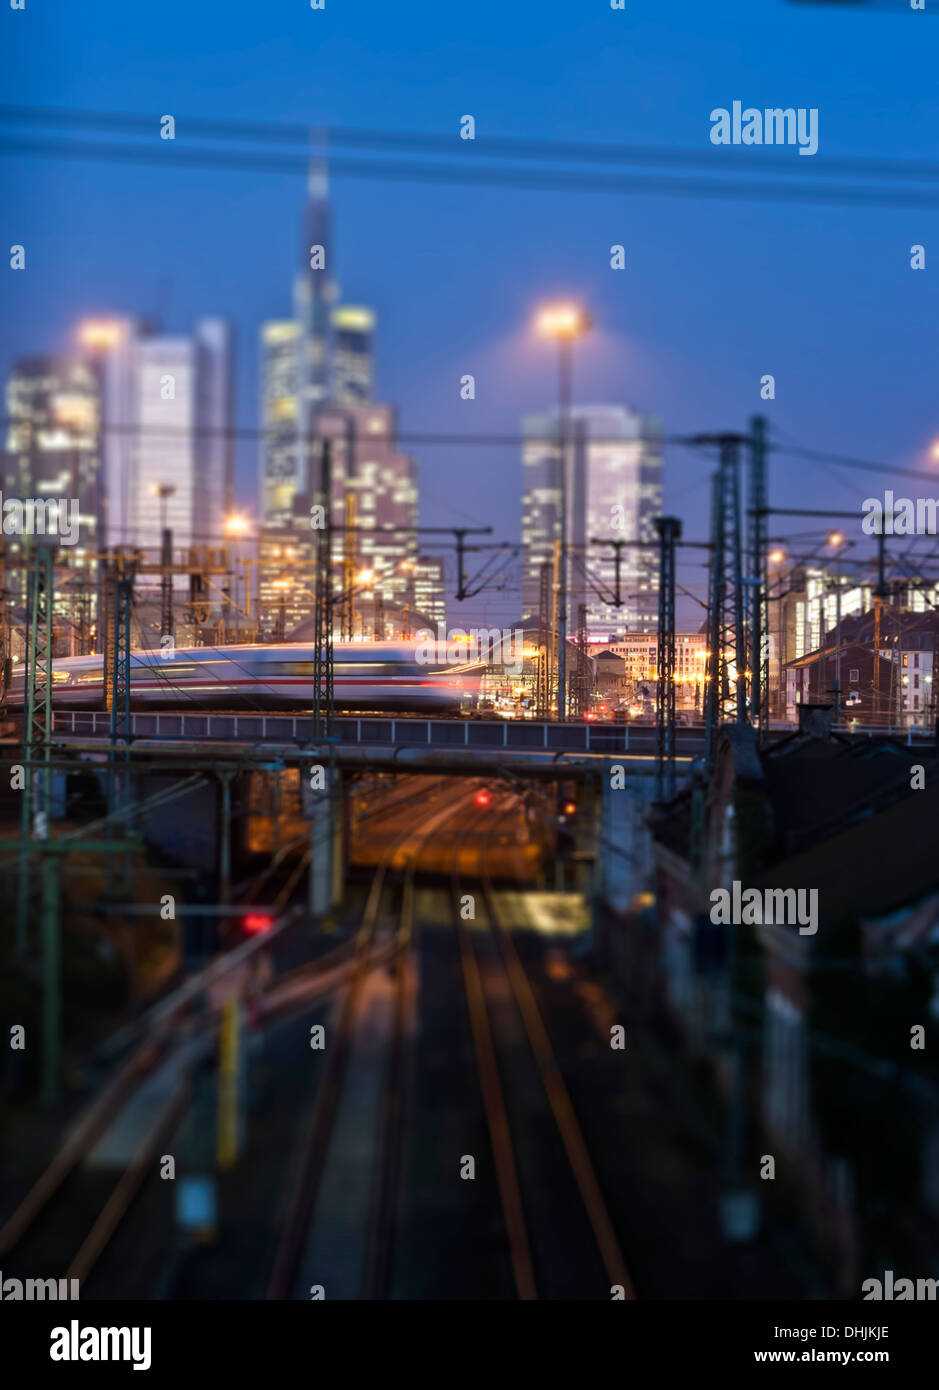 Germany, Hesse, Frankfurt, Tilt-shift view of central station with financial district in background - Stock Image